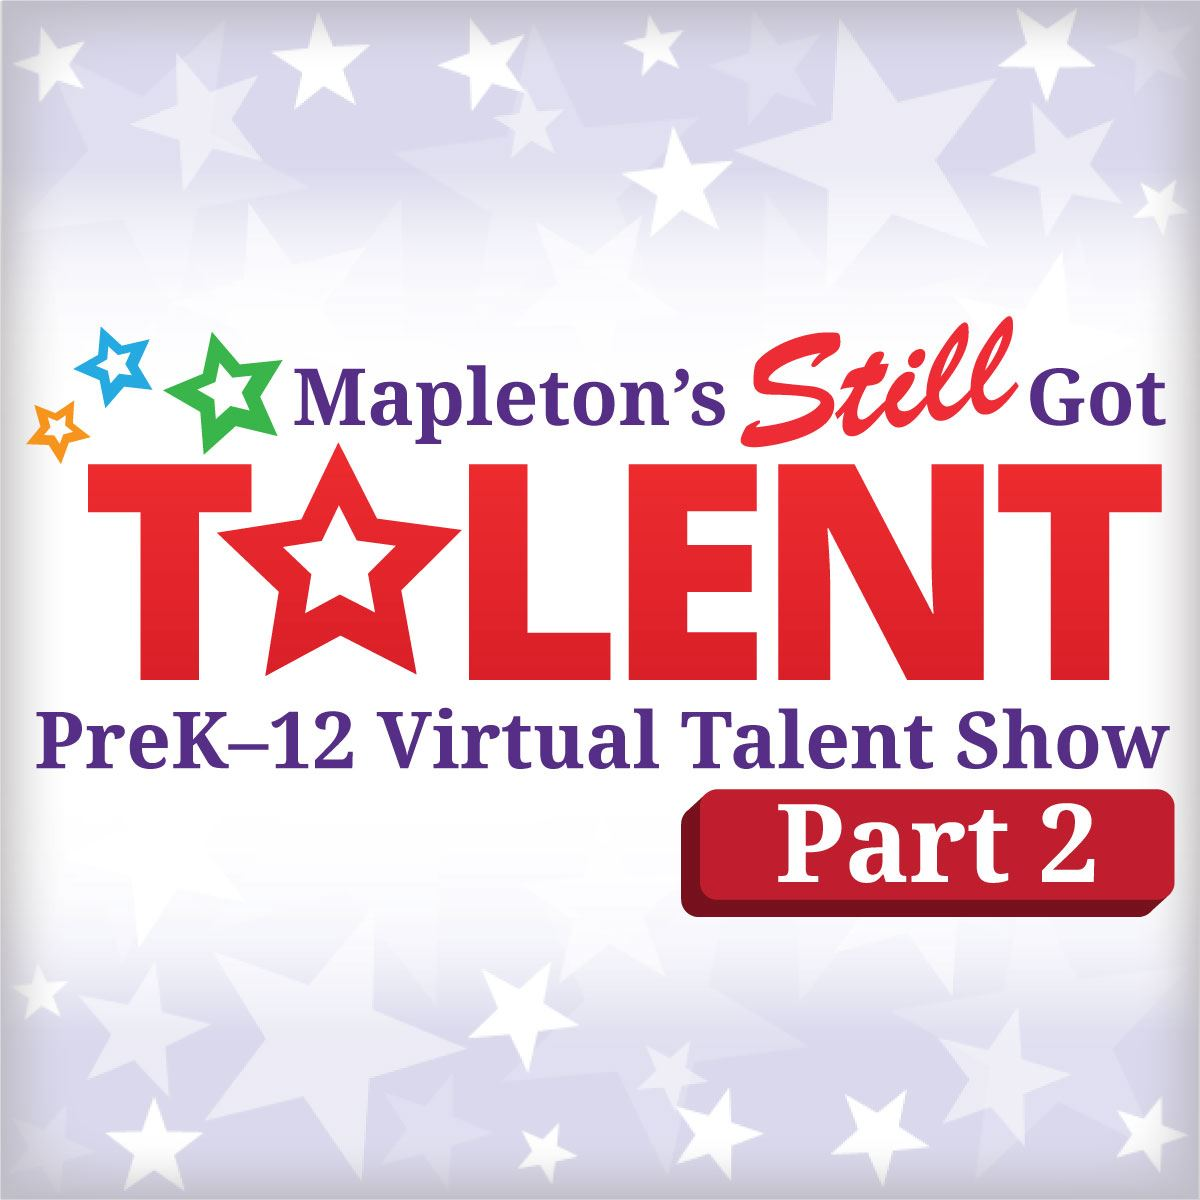 Mapleton's Still Got Talent – our virtual, home-based talent show!